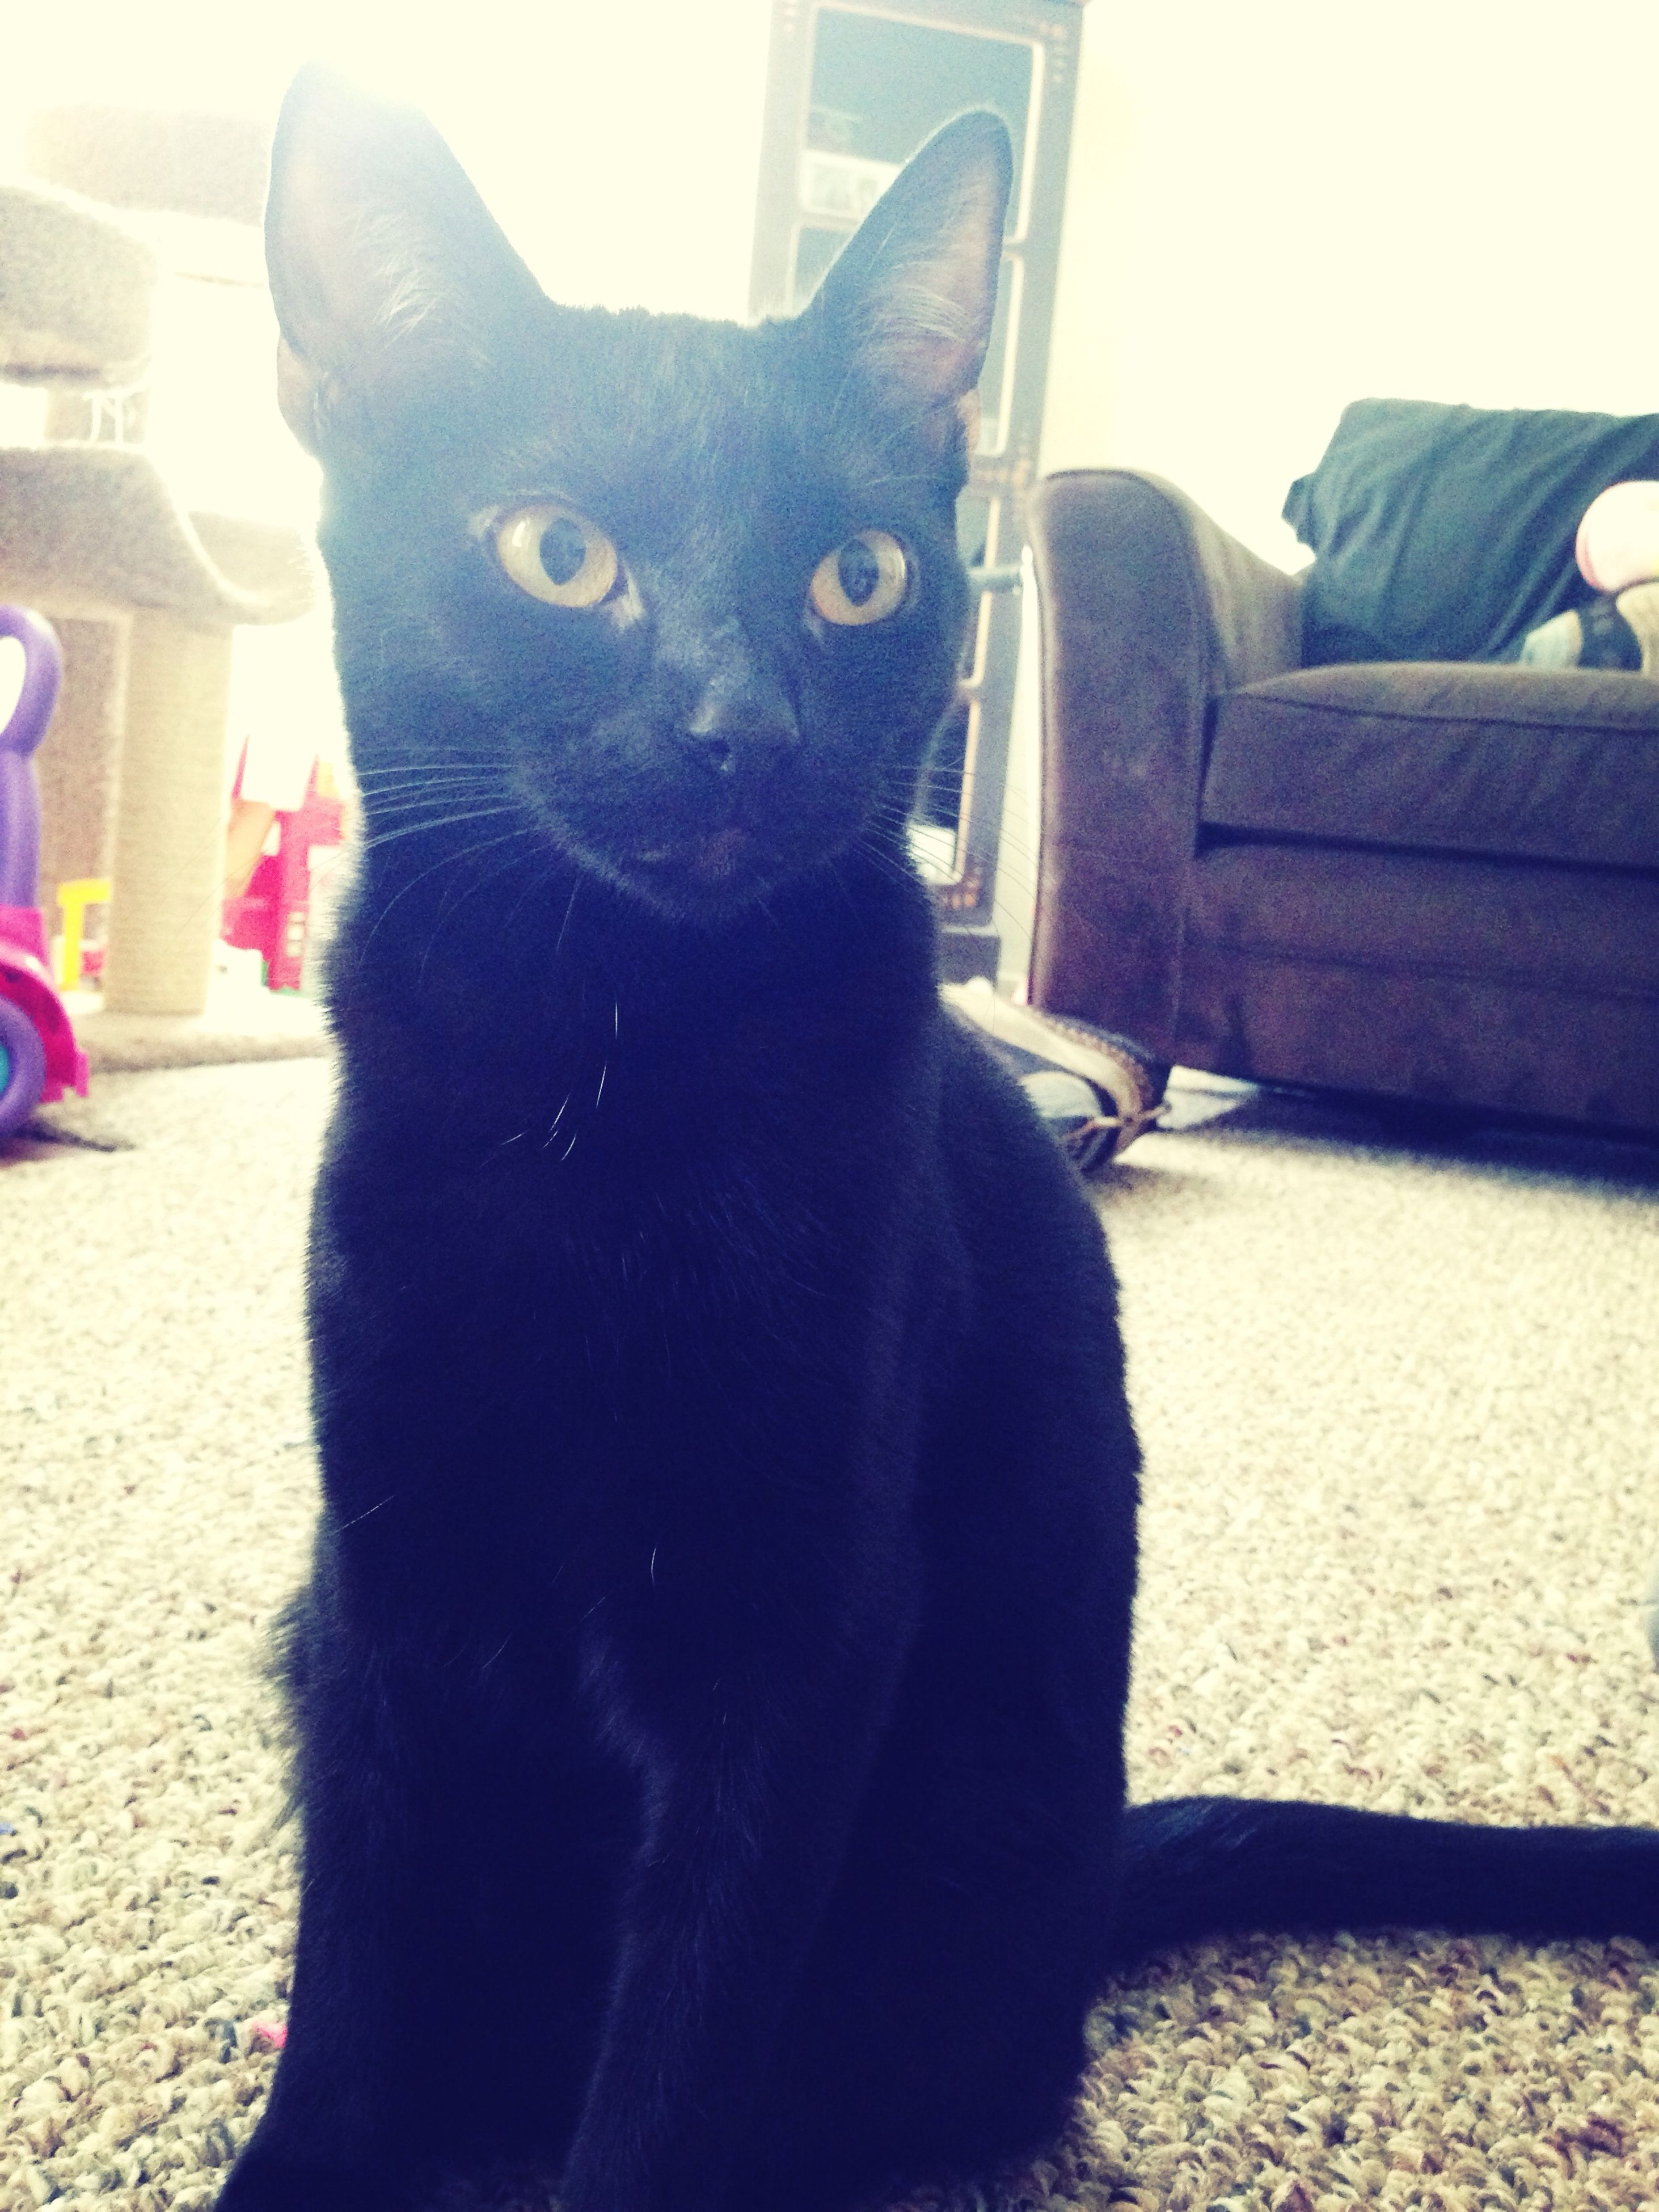 domestic animals, pets, one animal, animal themes, mammal, domestic cat, cat, feline, portrait, indoors, looking at camera, sitting, whisker, relaxation, black color, home interior, staring, close-up, front view